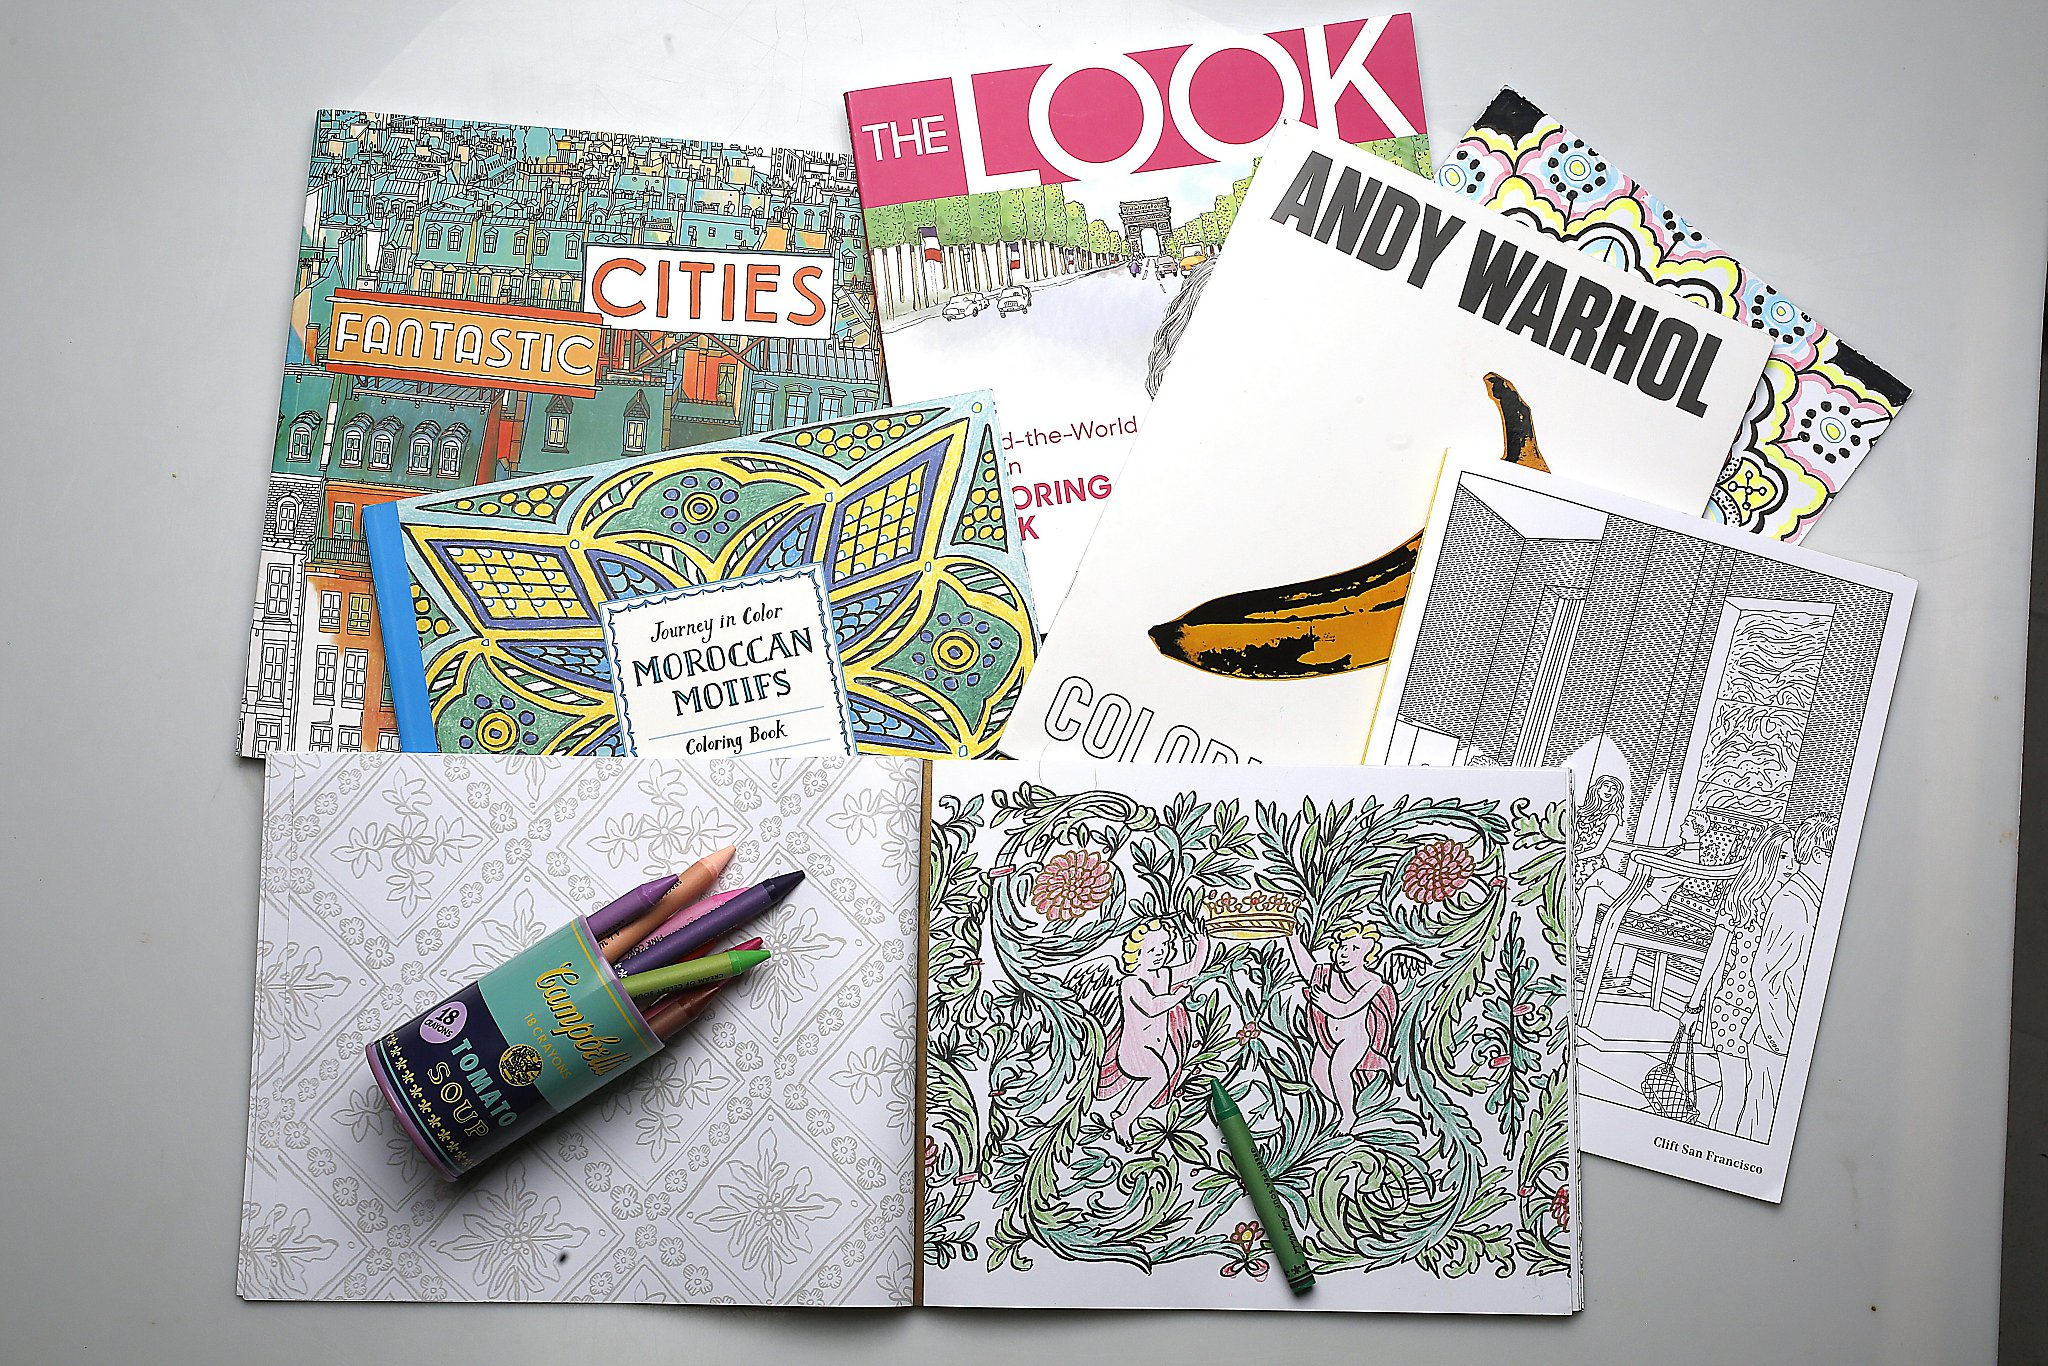 The anatomy coloring book kapit download - Color Me Rad Adults Rediscover Pleasures Of Kids Pastime San Francisco Chronicle